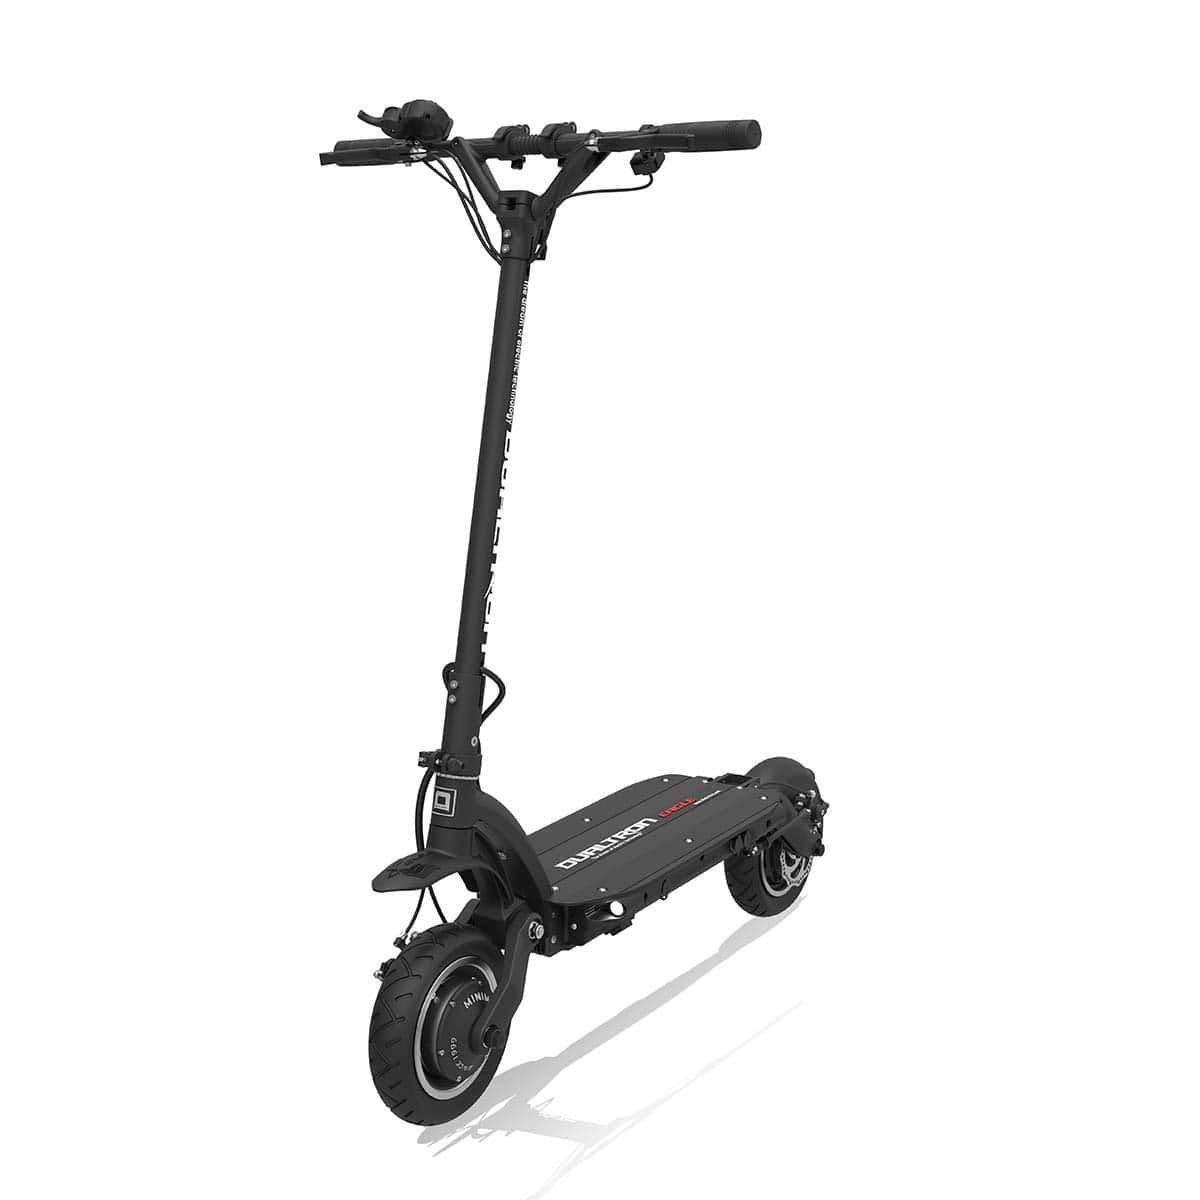 Dualtron Eagle Pro - 3600w Electric Scooter - Beyond Electrek